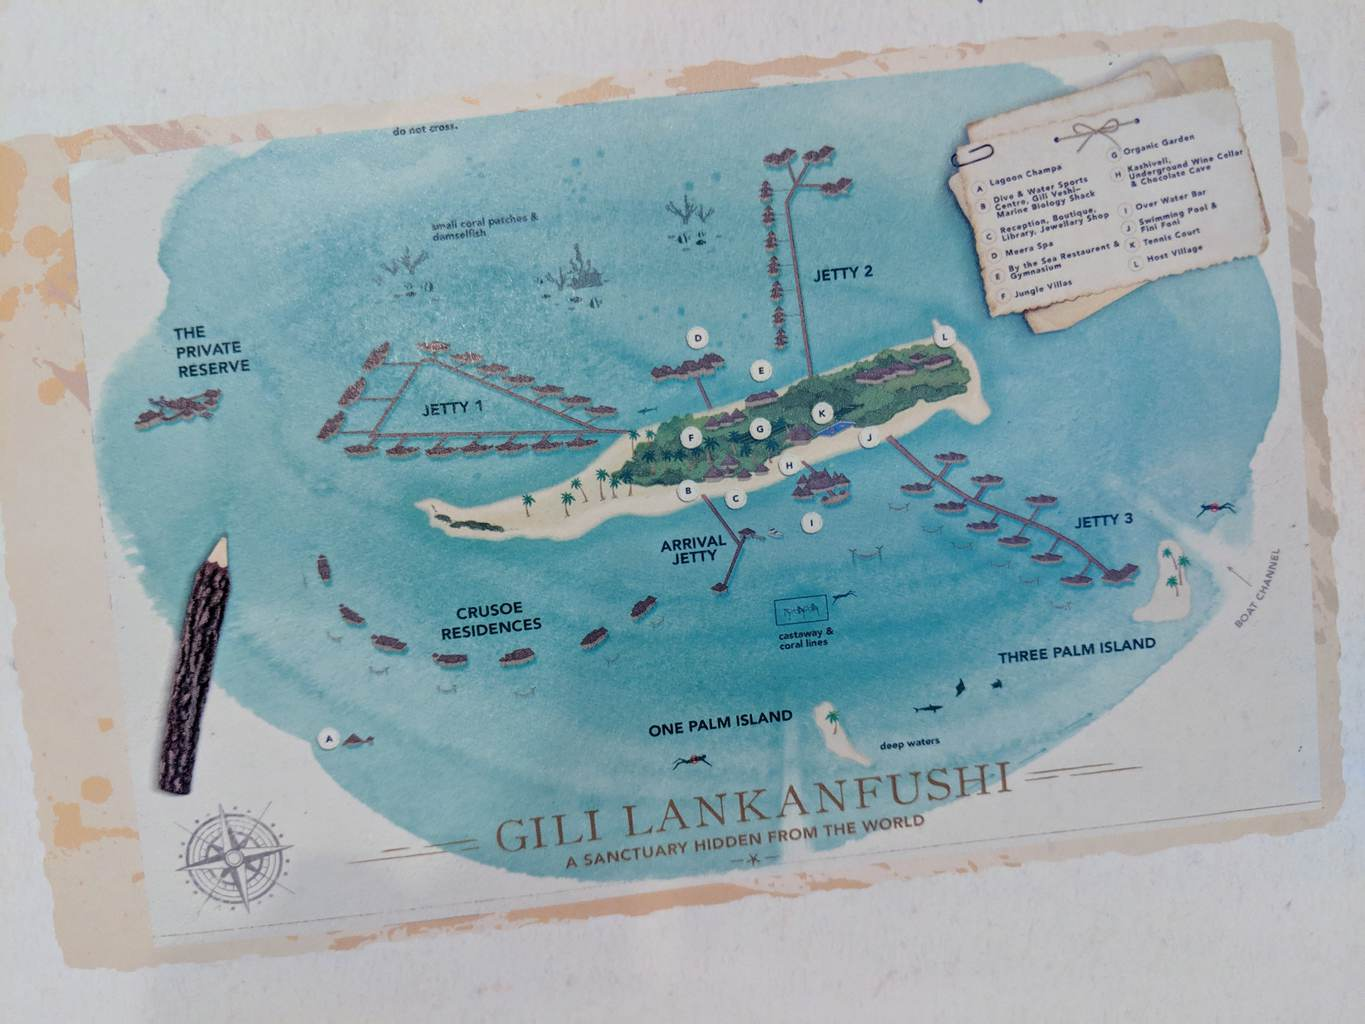 Map of Gili Lankanfushi